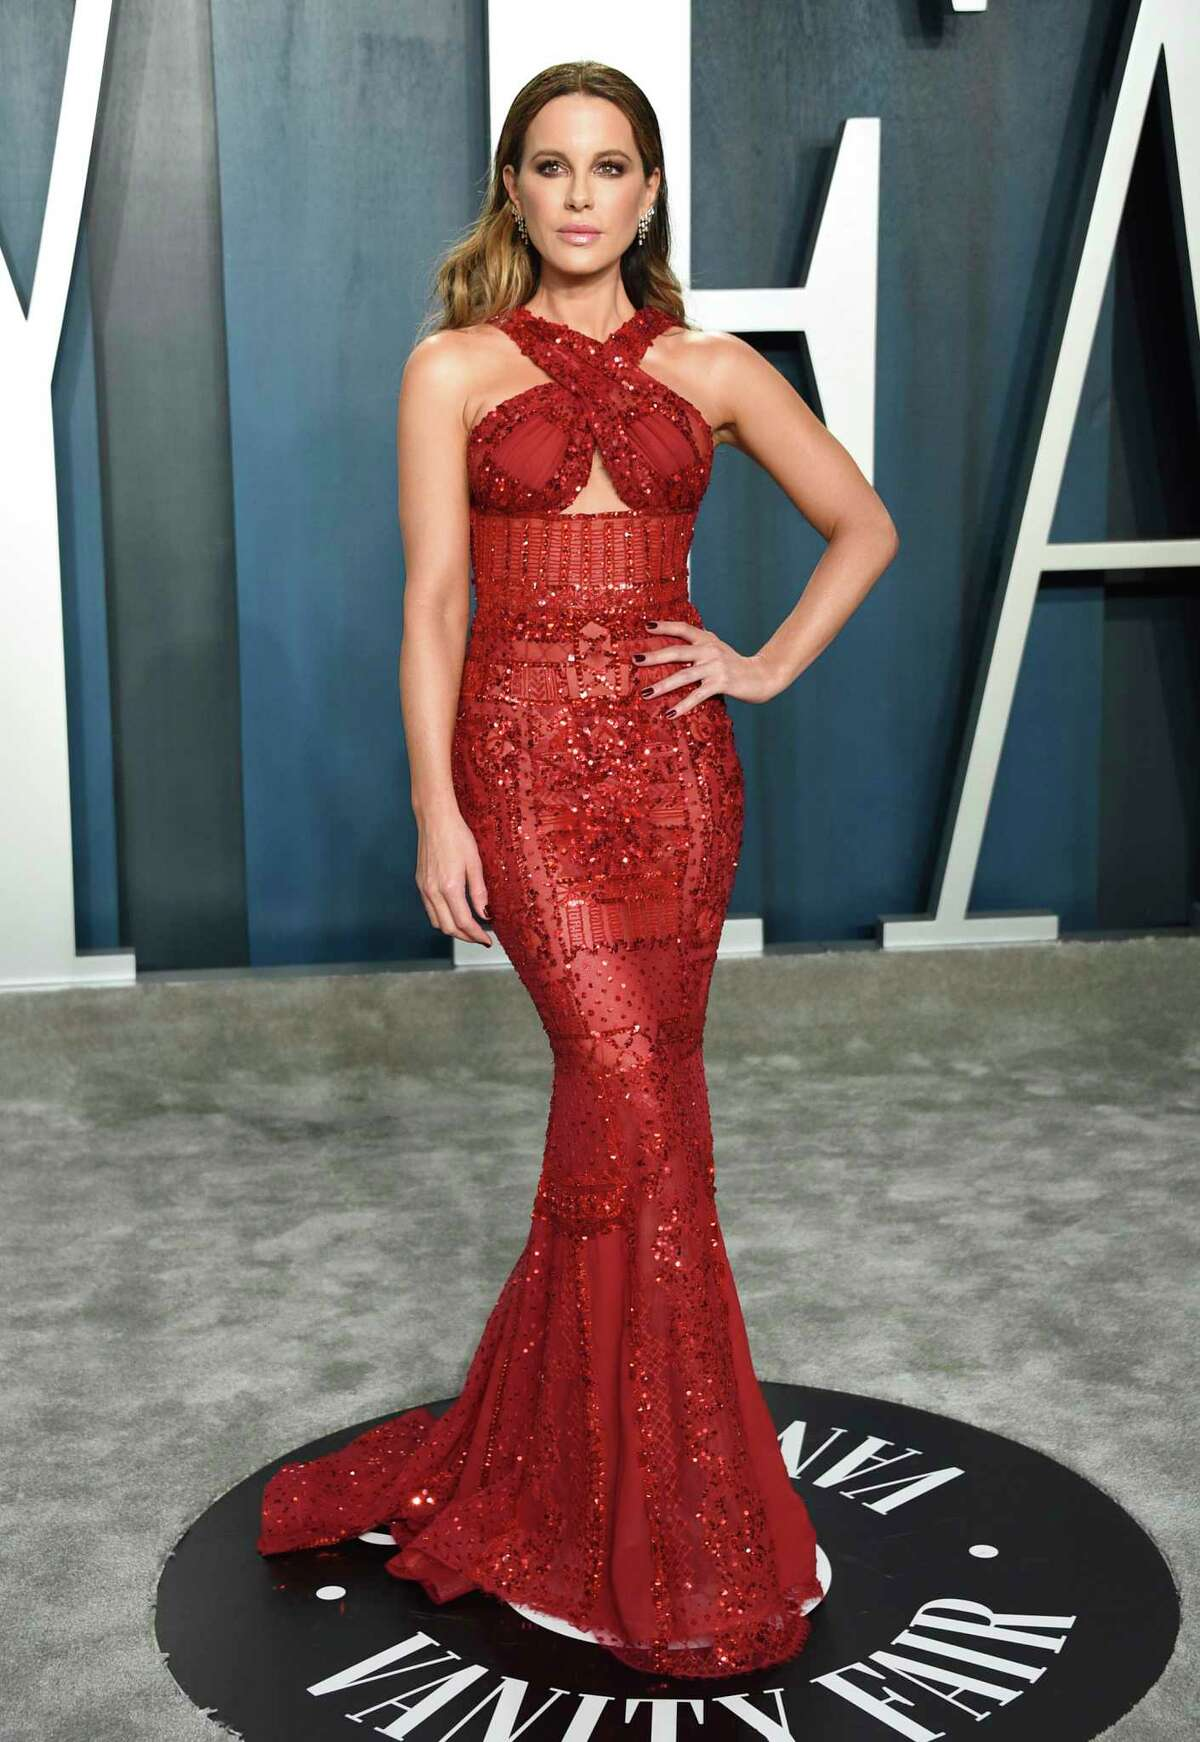 FILE - In this Feb. 9, 2020, file photo, Kate Beckinsale arrives at the Vanity Fair Oscar Party in Beverly Hills, Calif. Beckinsale turns 47 on July 26. (Photo by Evan Agostini/Invision/AP, File)